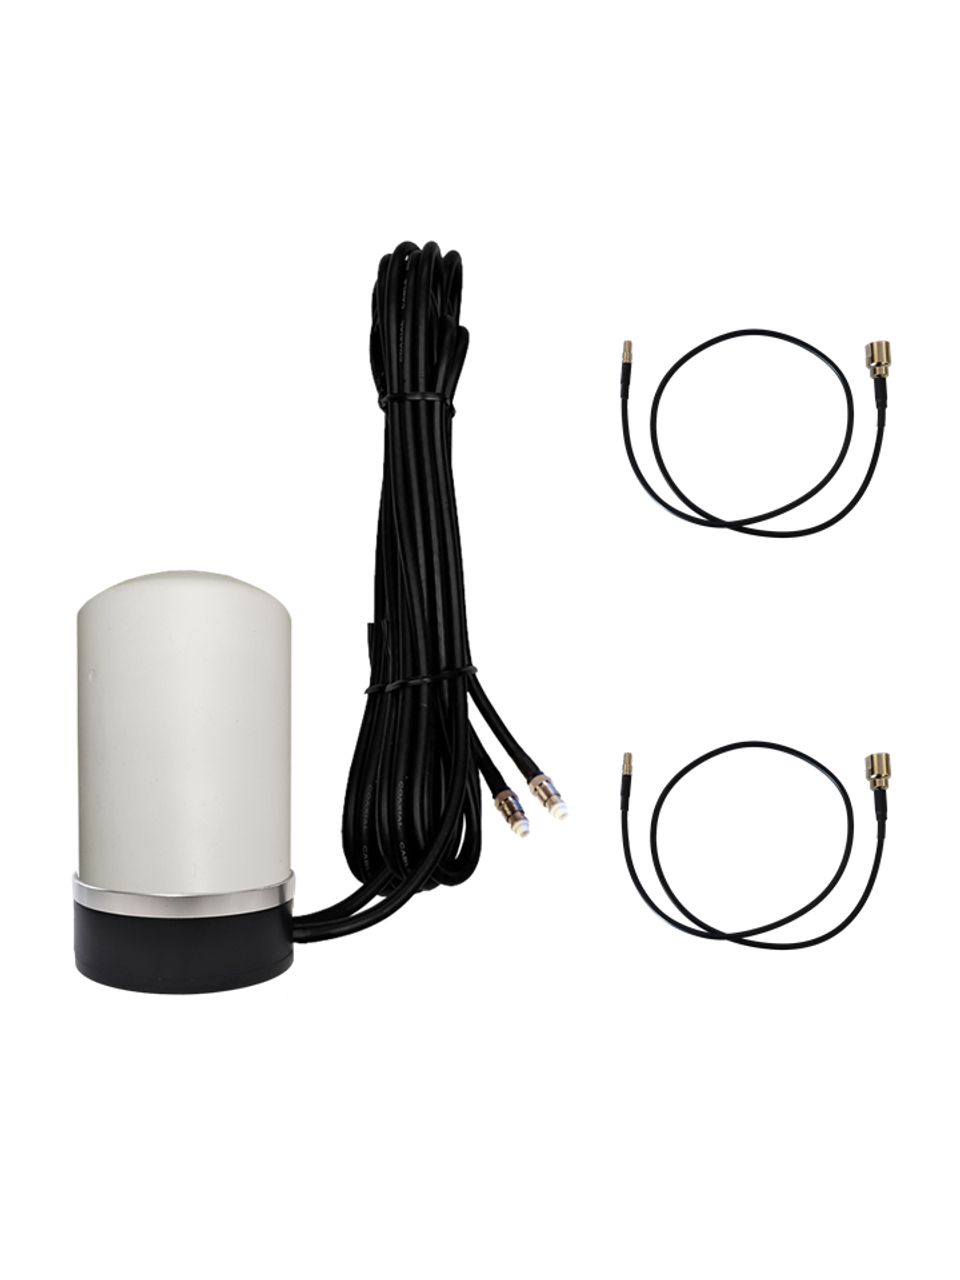 M17M Omni Directional MIMO 2 x Cellular 4G LTE CBRS 5G NR IoT M2M Magnetic Mount Antenna w/2 x 16ft Coax Cables for Verizon Novatel Jetpack MiFi 7730L